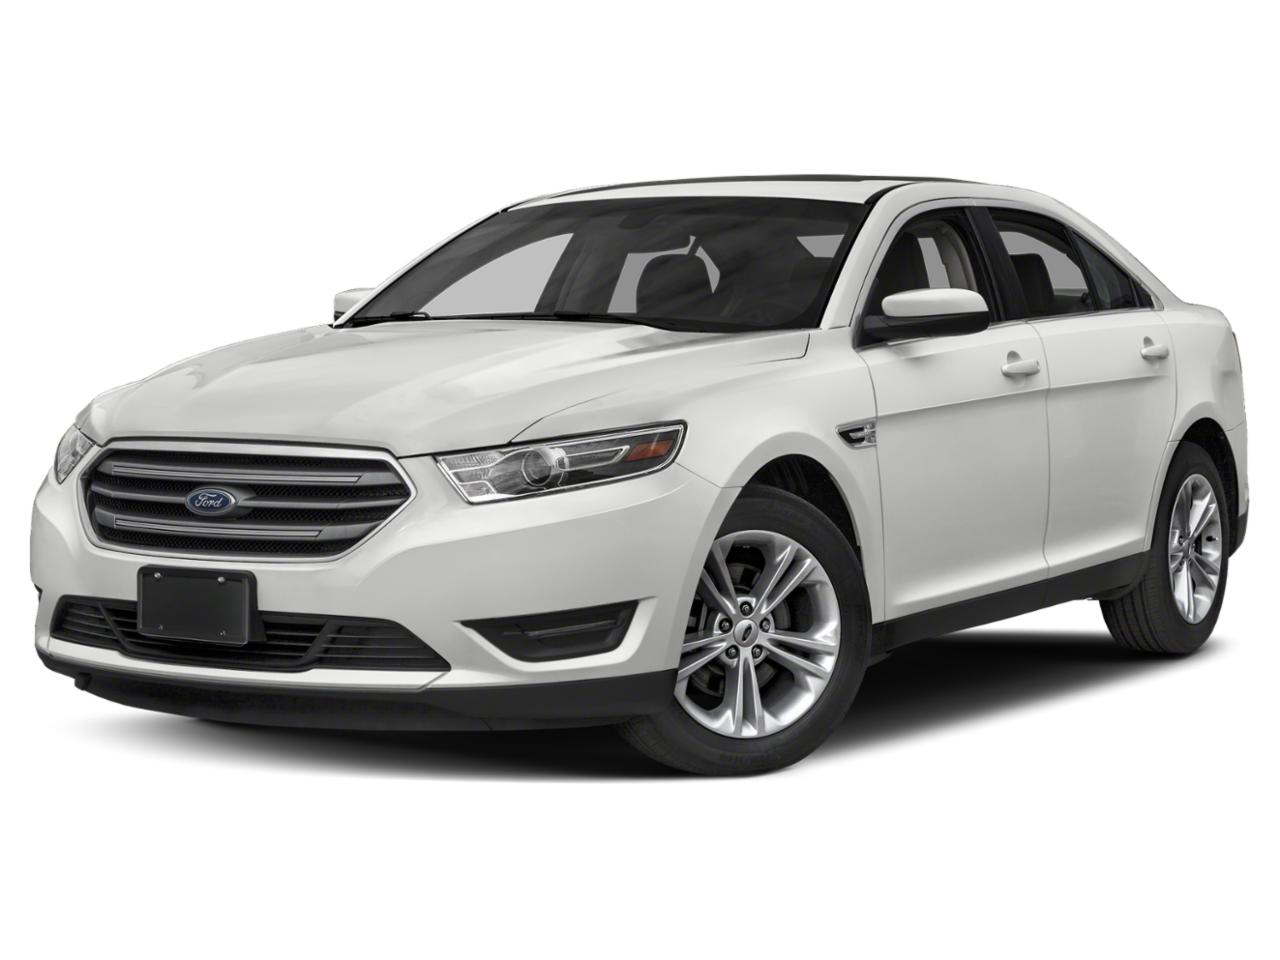 2019 Ford Taurus Vehicle Photo in Plainfield, IL 60586